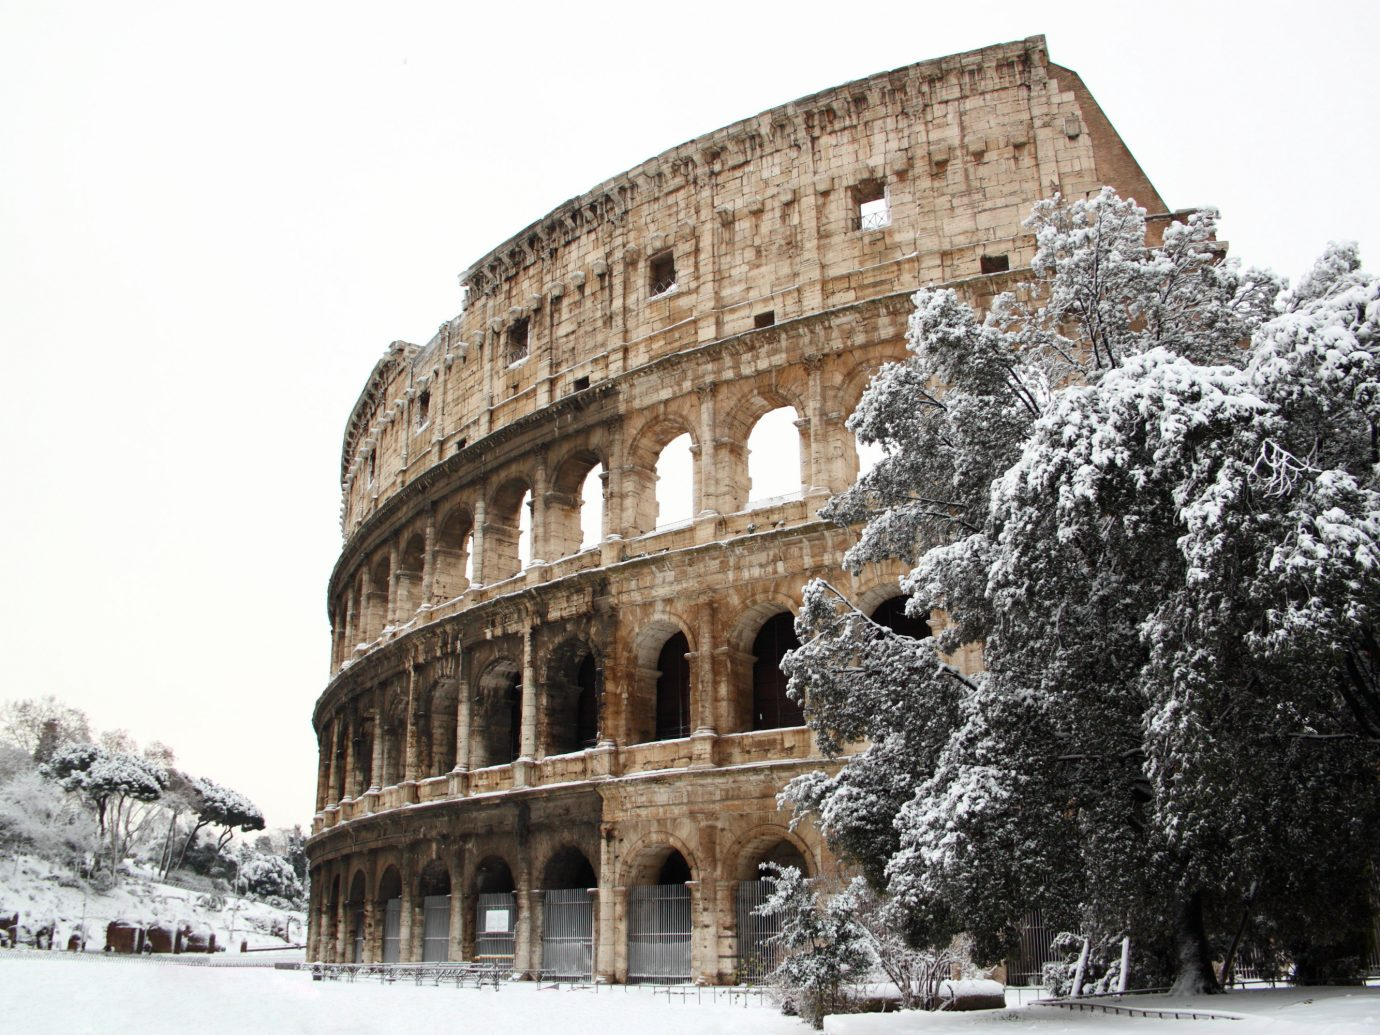 Boutique Hotels Romance Trip Ideas outdoor building snow Winter landmark historic site ancient history tourist attraction freezing medieval architecture tree history stone facade sky Ruins